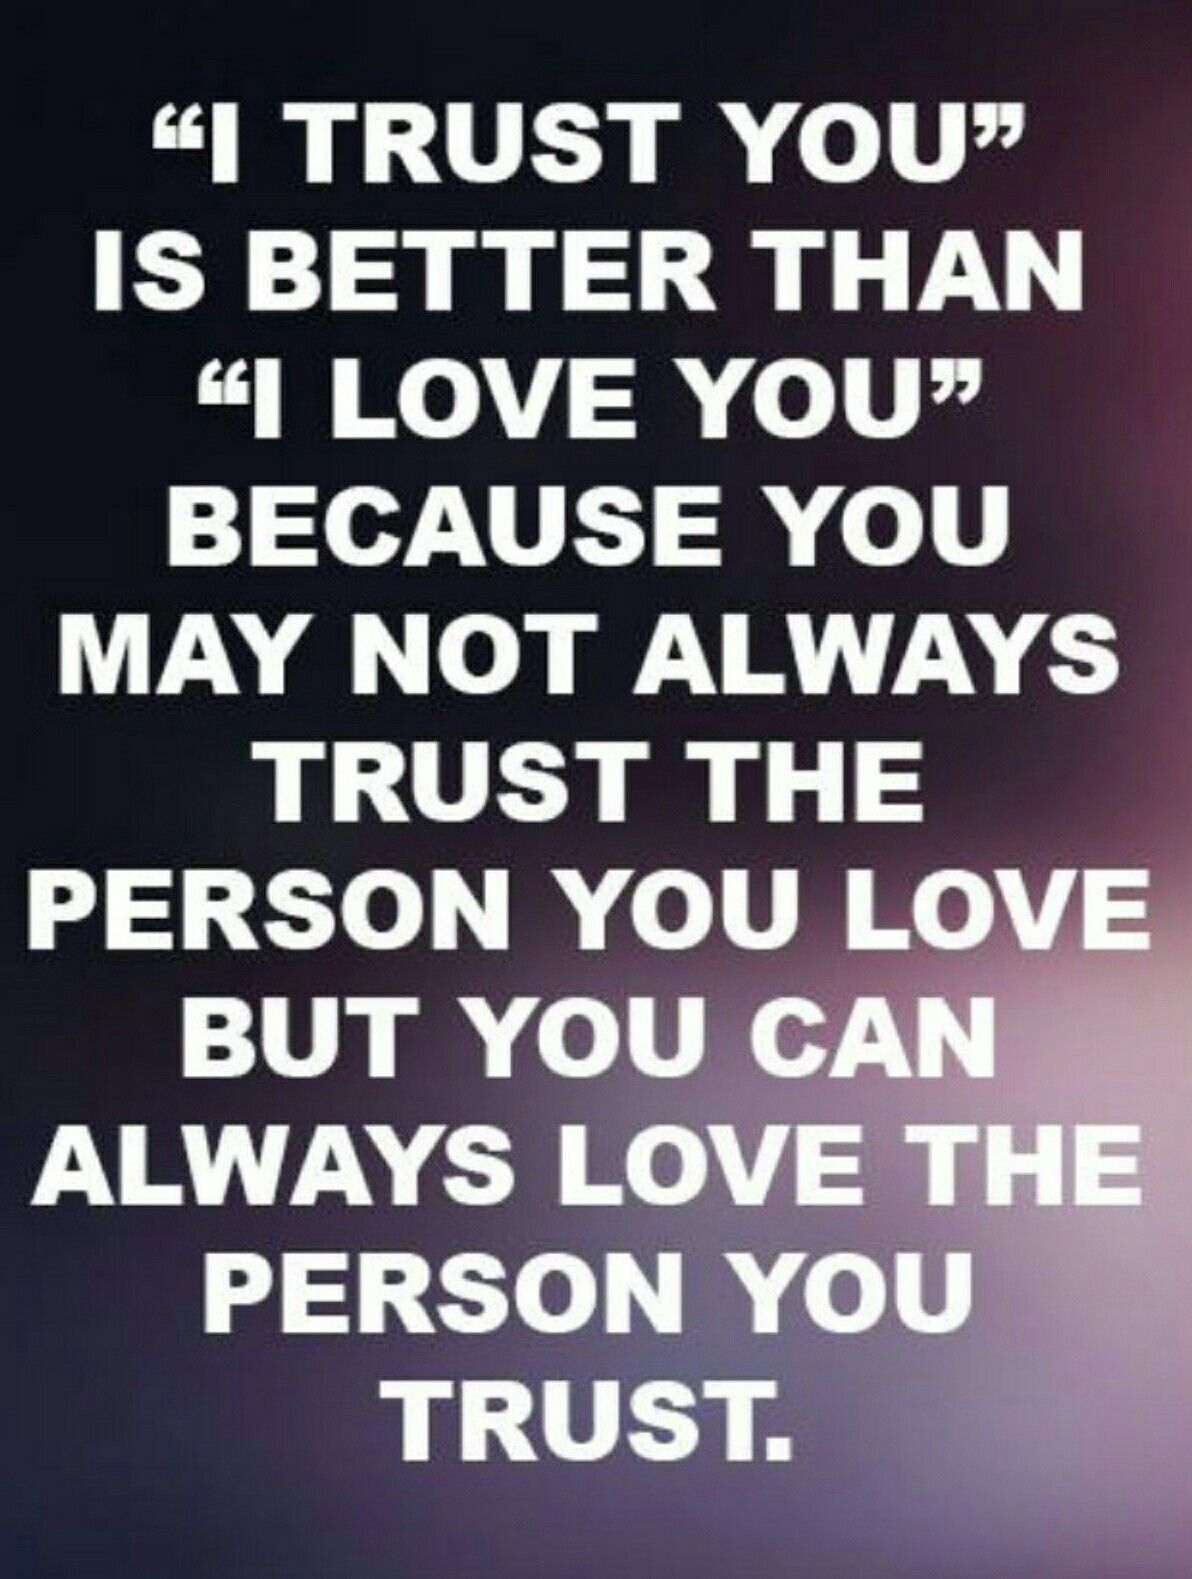 100 Trust Quotes For Love, Relationship & Friendship